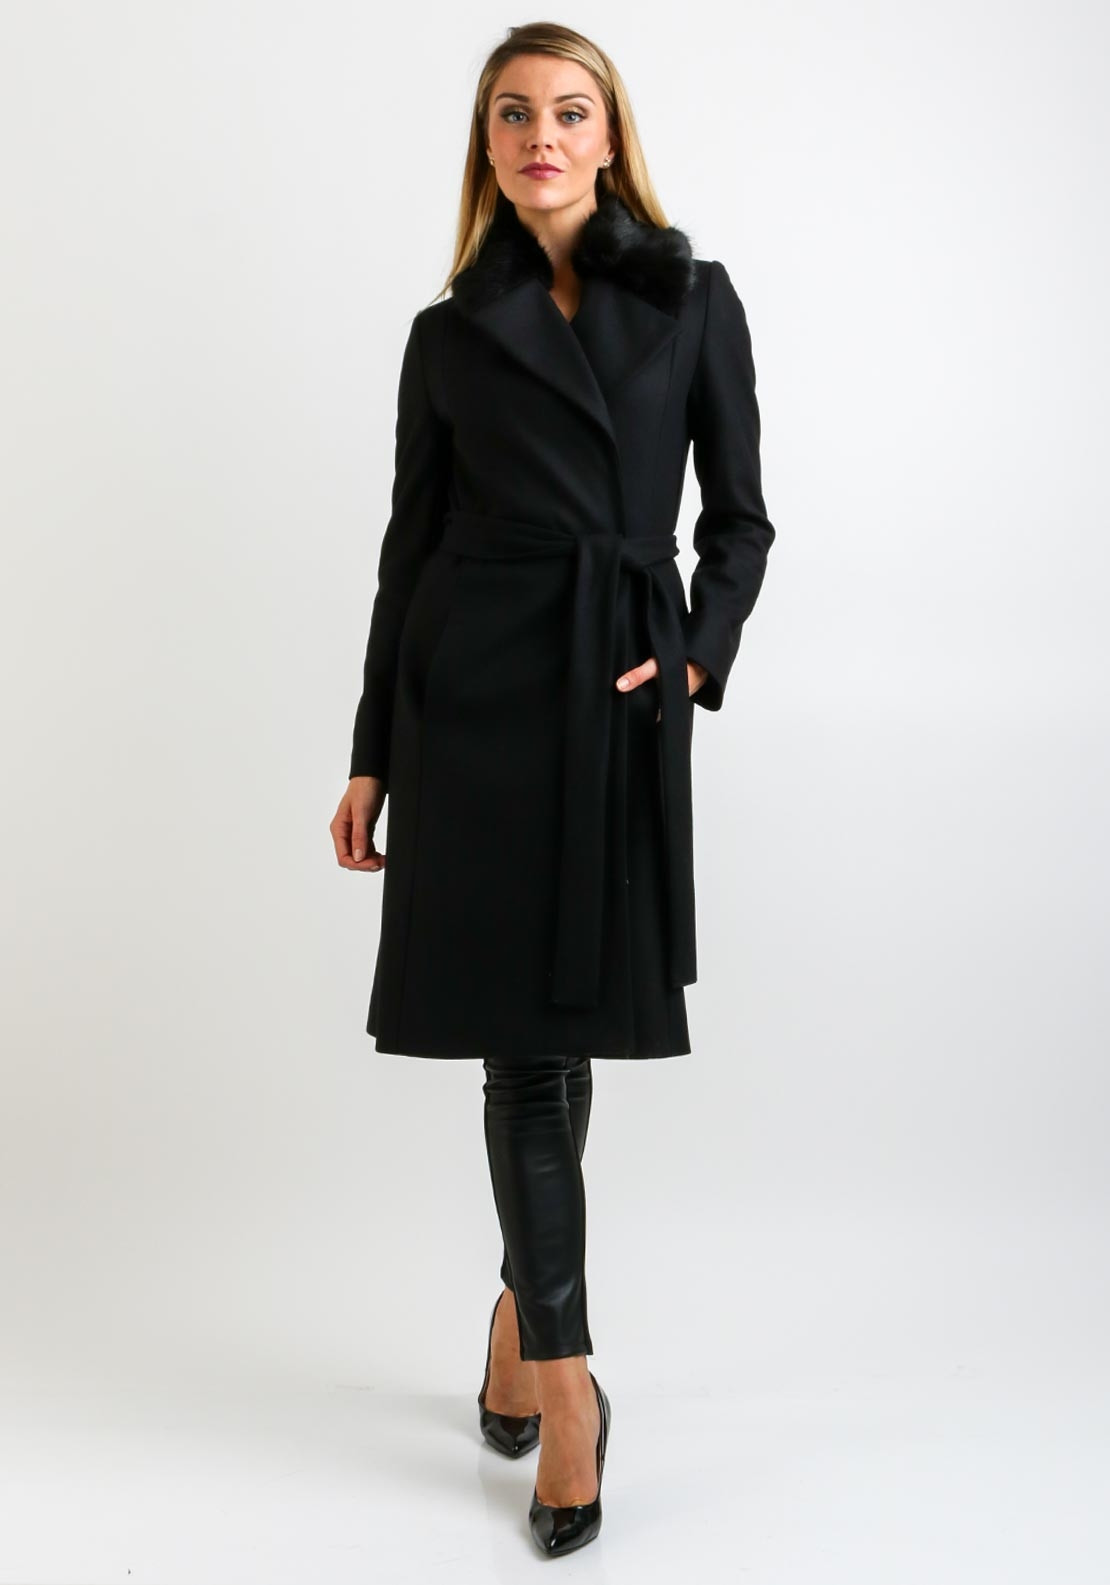 ef0f3448aed68f French Connection Wool Wrap Coat, Black | McElhinneys